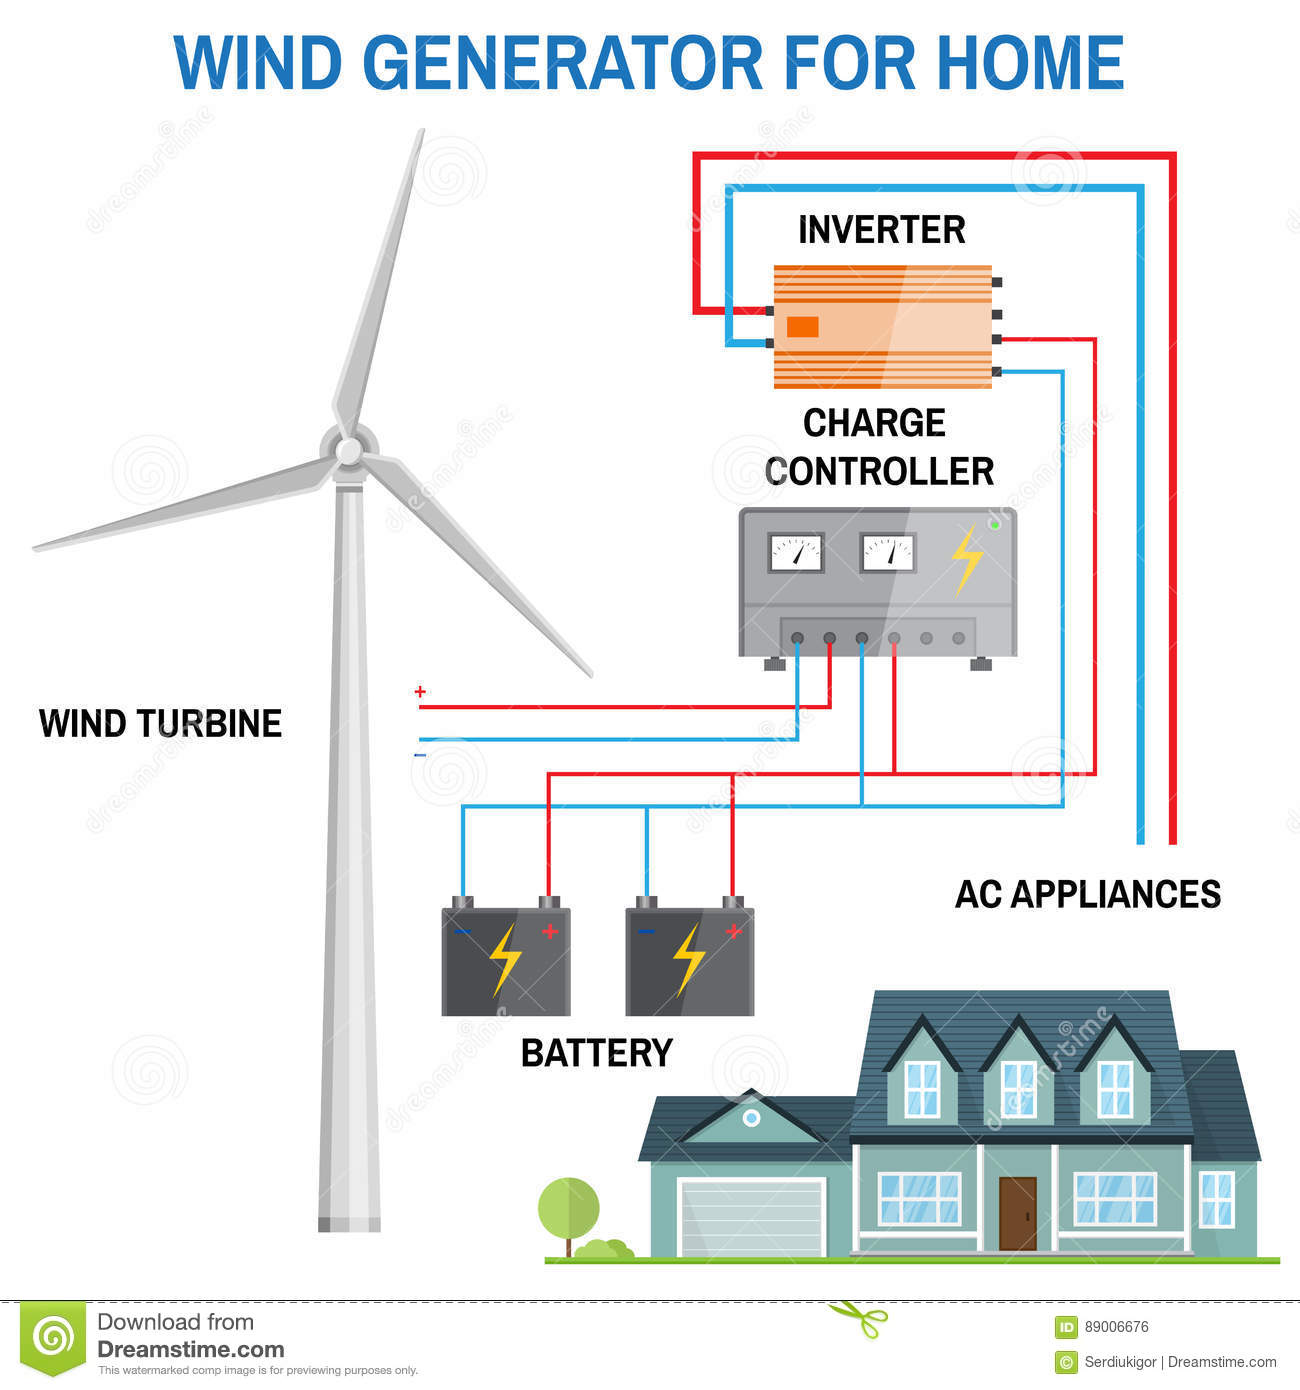 Wind Generator For Home Vector Stock Illustration Of Diagram A Renewable Energy Concept Simplified An Off Grid System Turbine Battery Charge Controller And Inverter